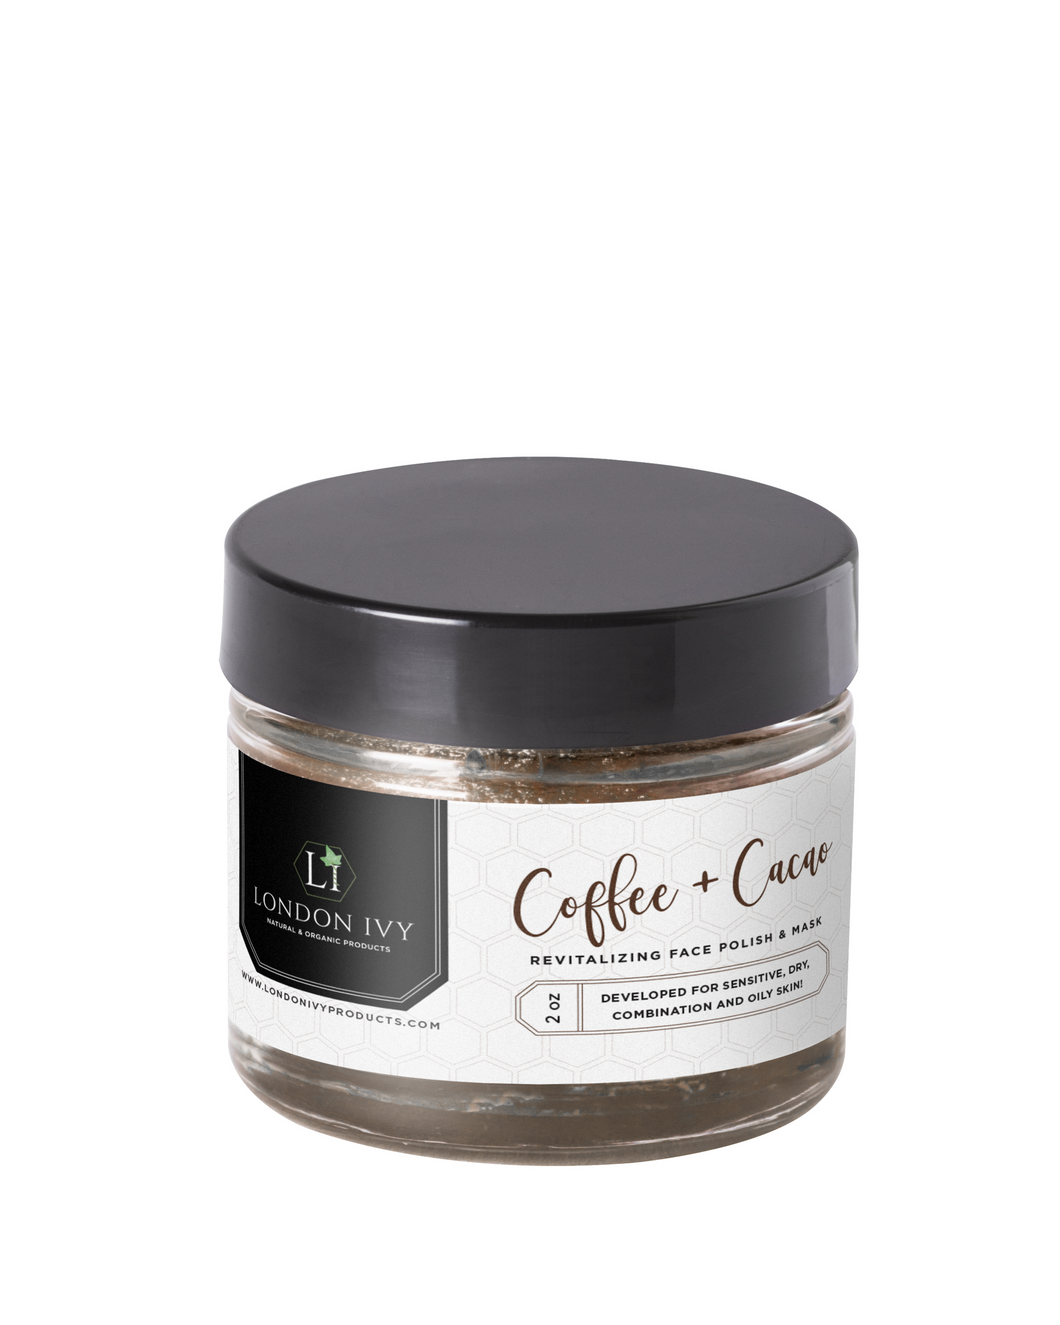 Coffee + Cacao - Revitalizing Face Polish & Mask